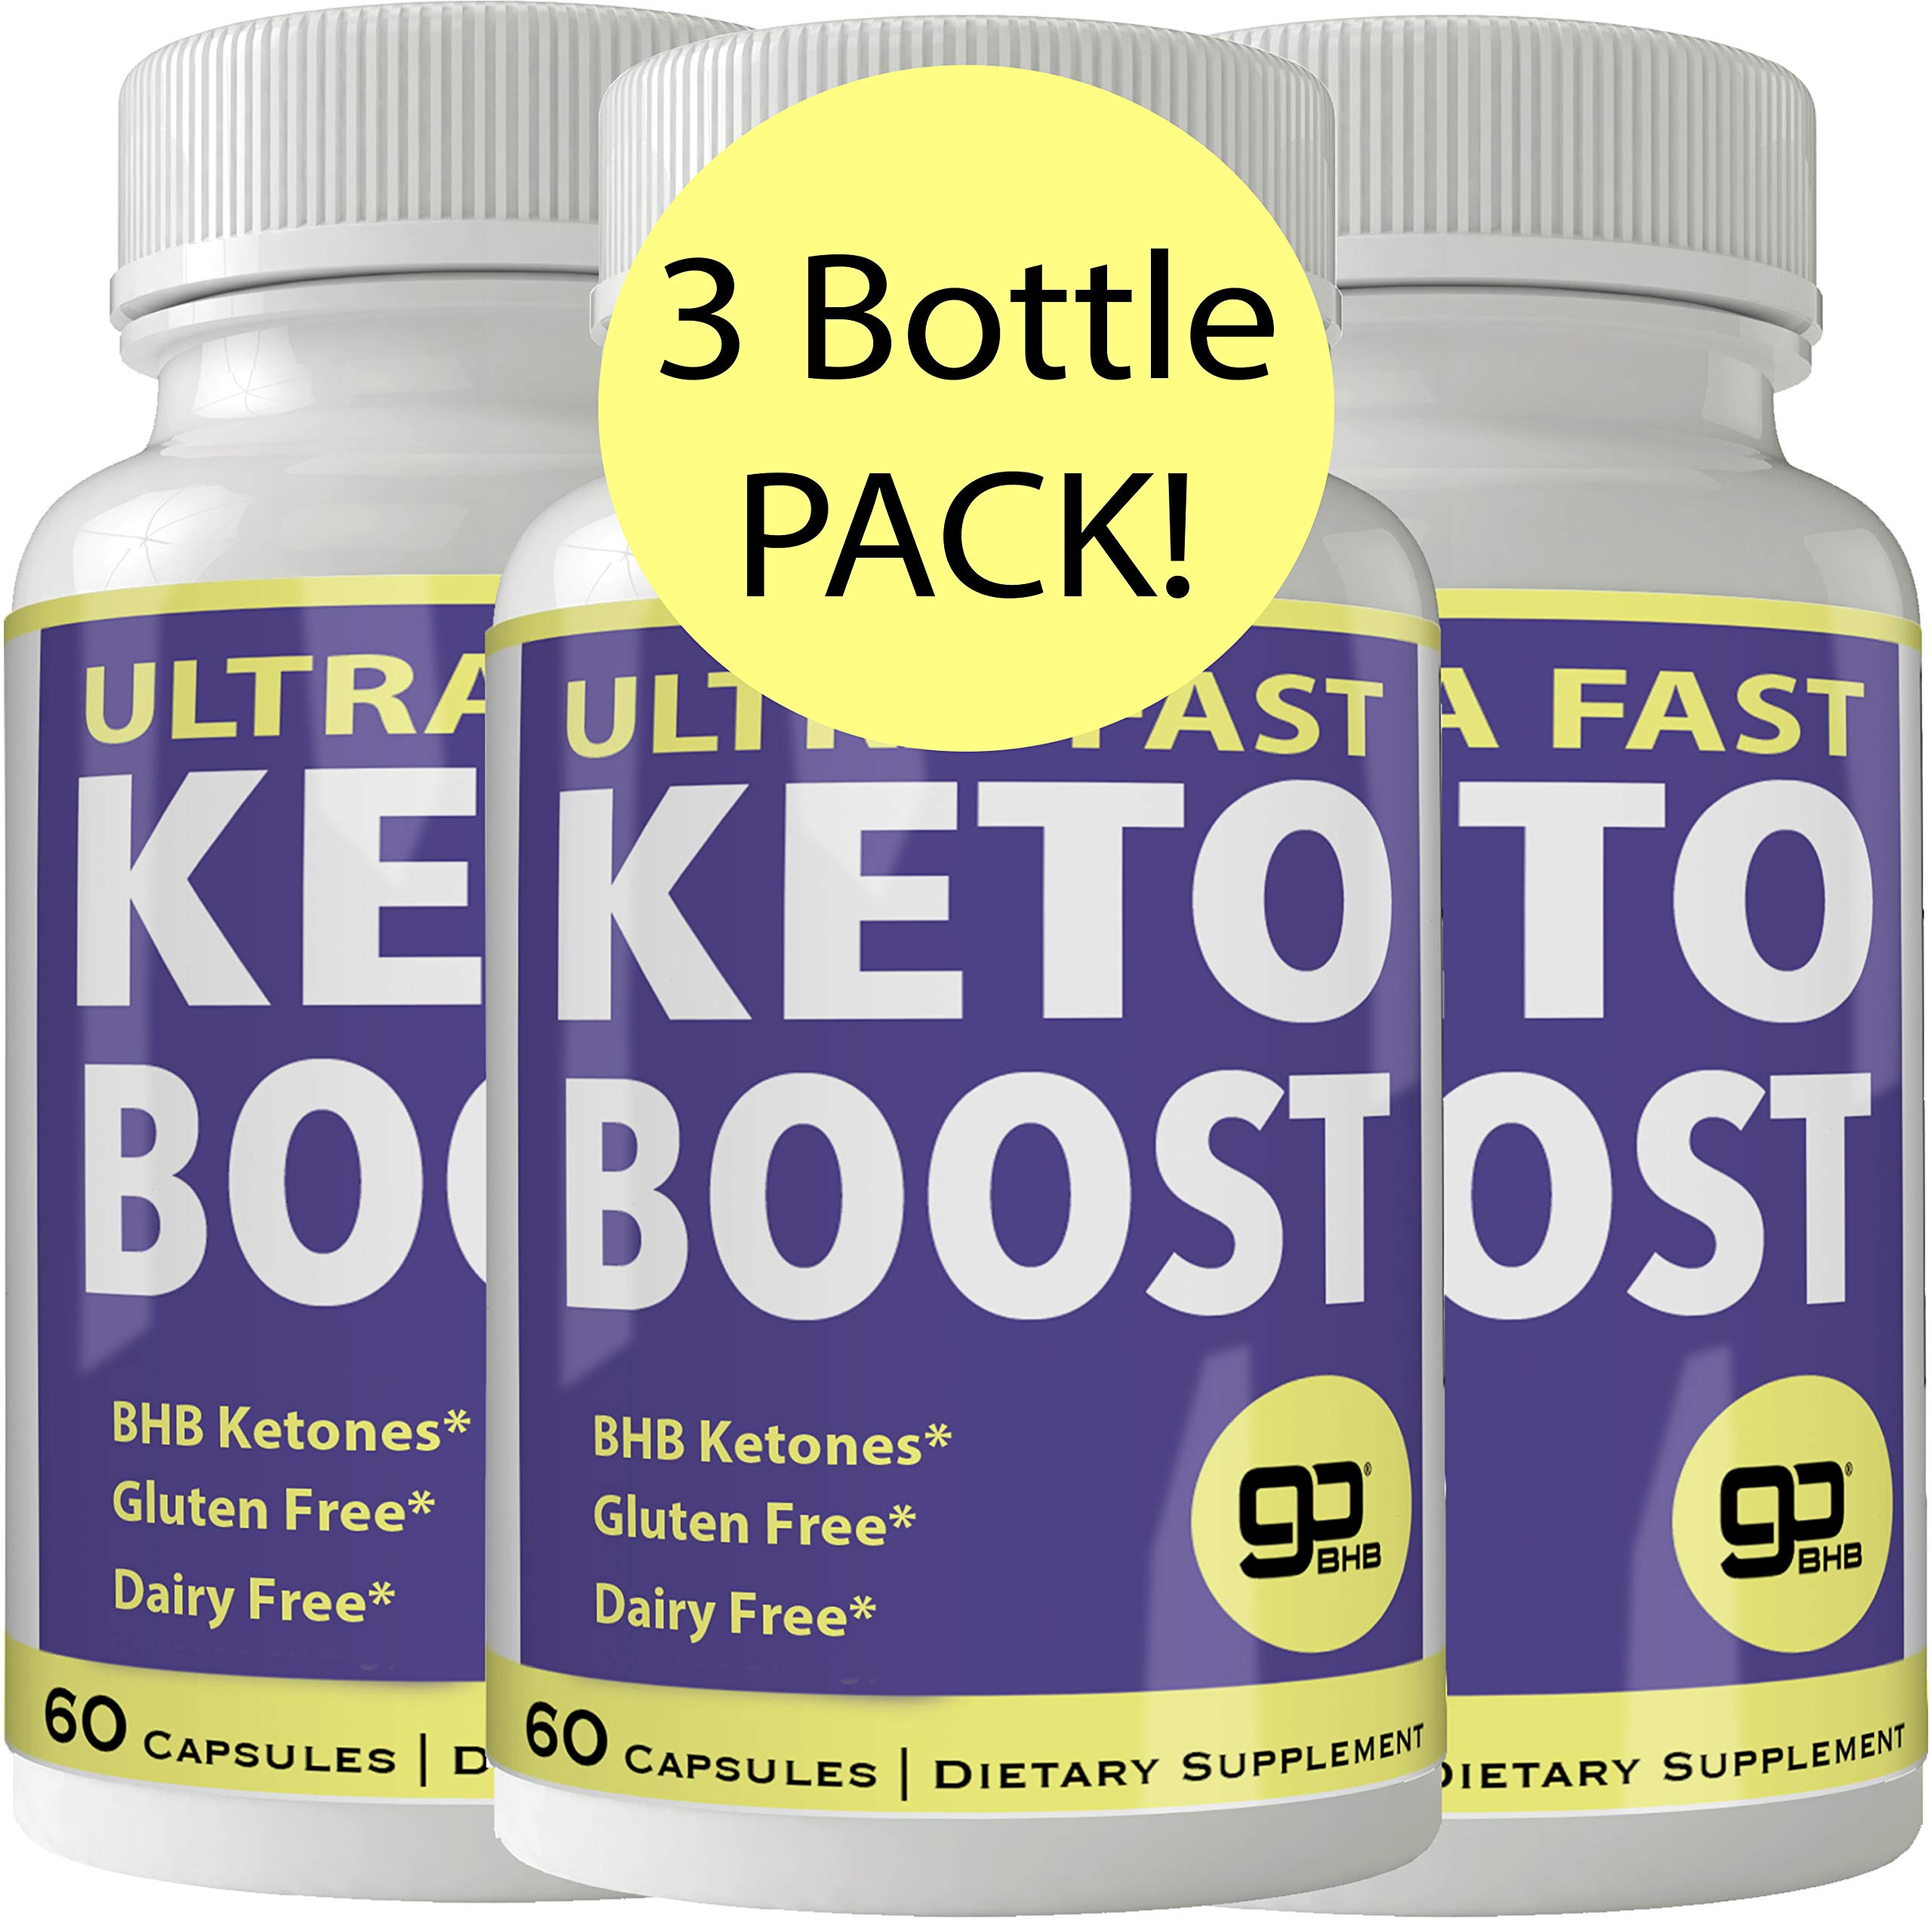 Ultra Fast Keto Boost Weight Loss Pills with Advanced Natural Ketogenic BHB Burn Fat Supplement Formula 800MG Capsules (3 Bottles) by nutra4health LLC